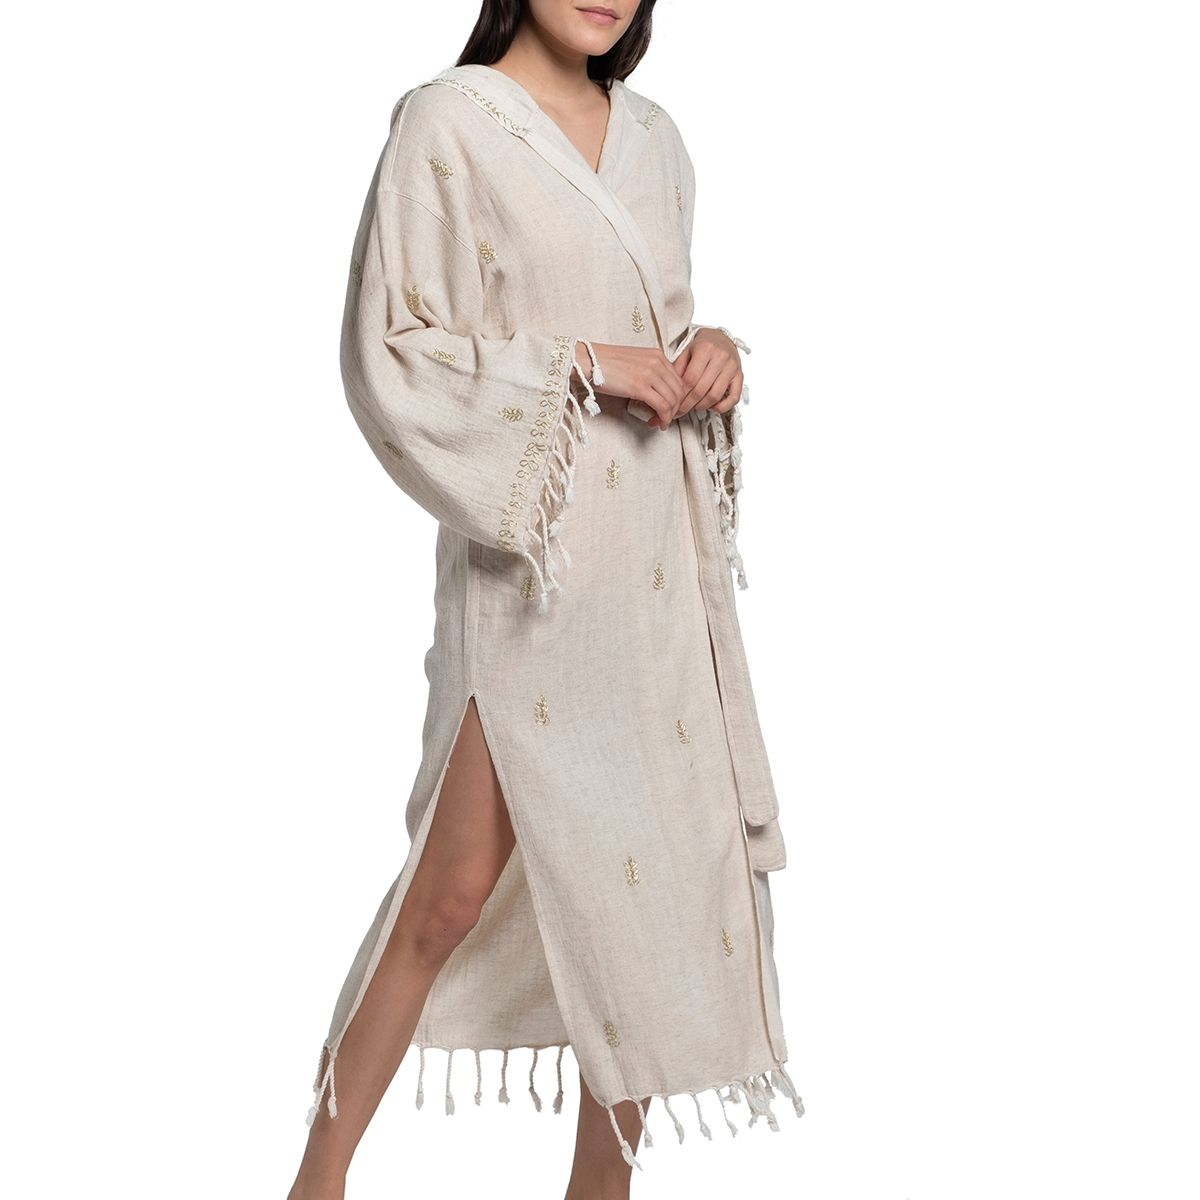 Dressing Gown - Hand Beaded / Gold